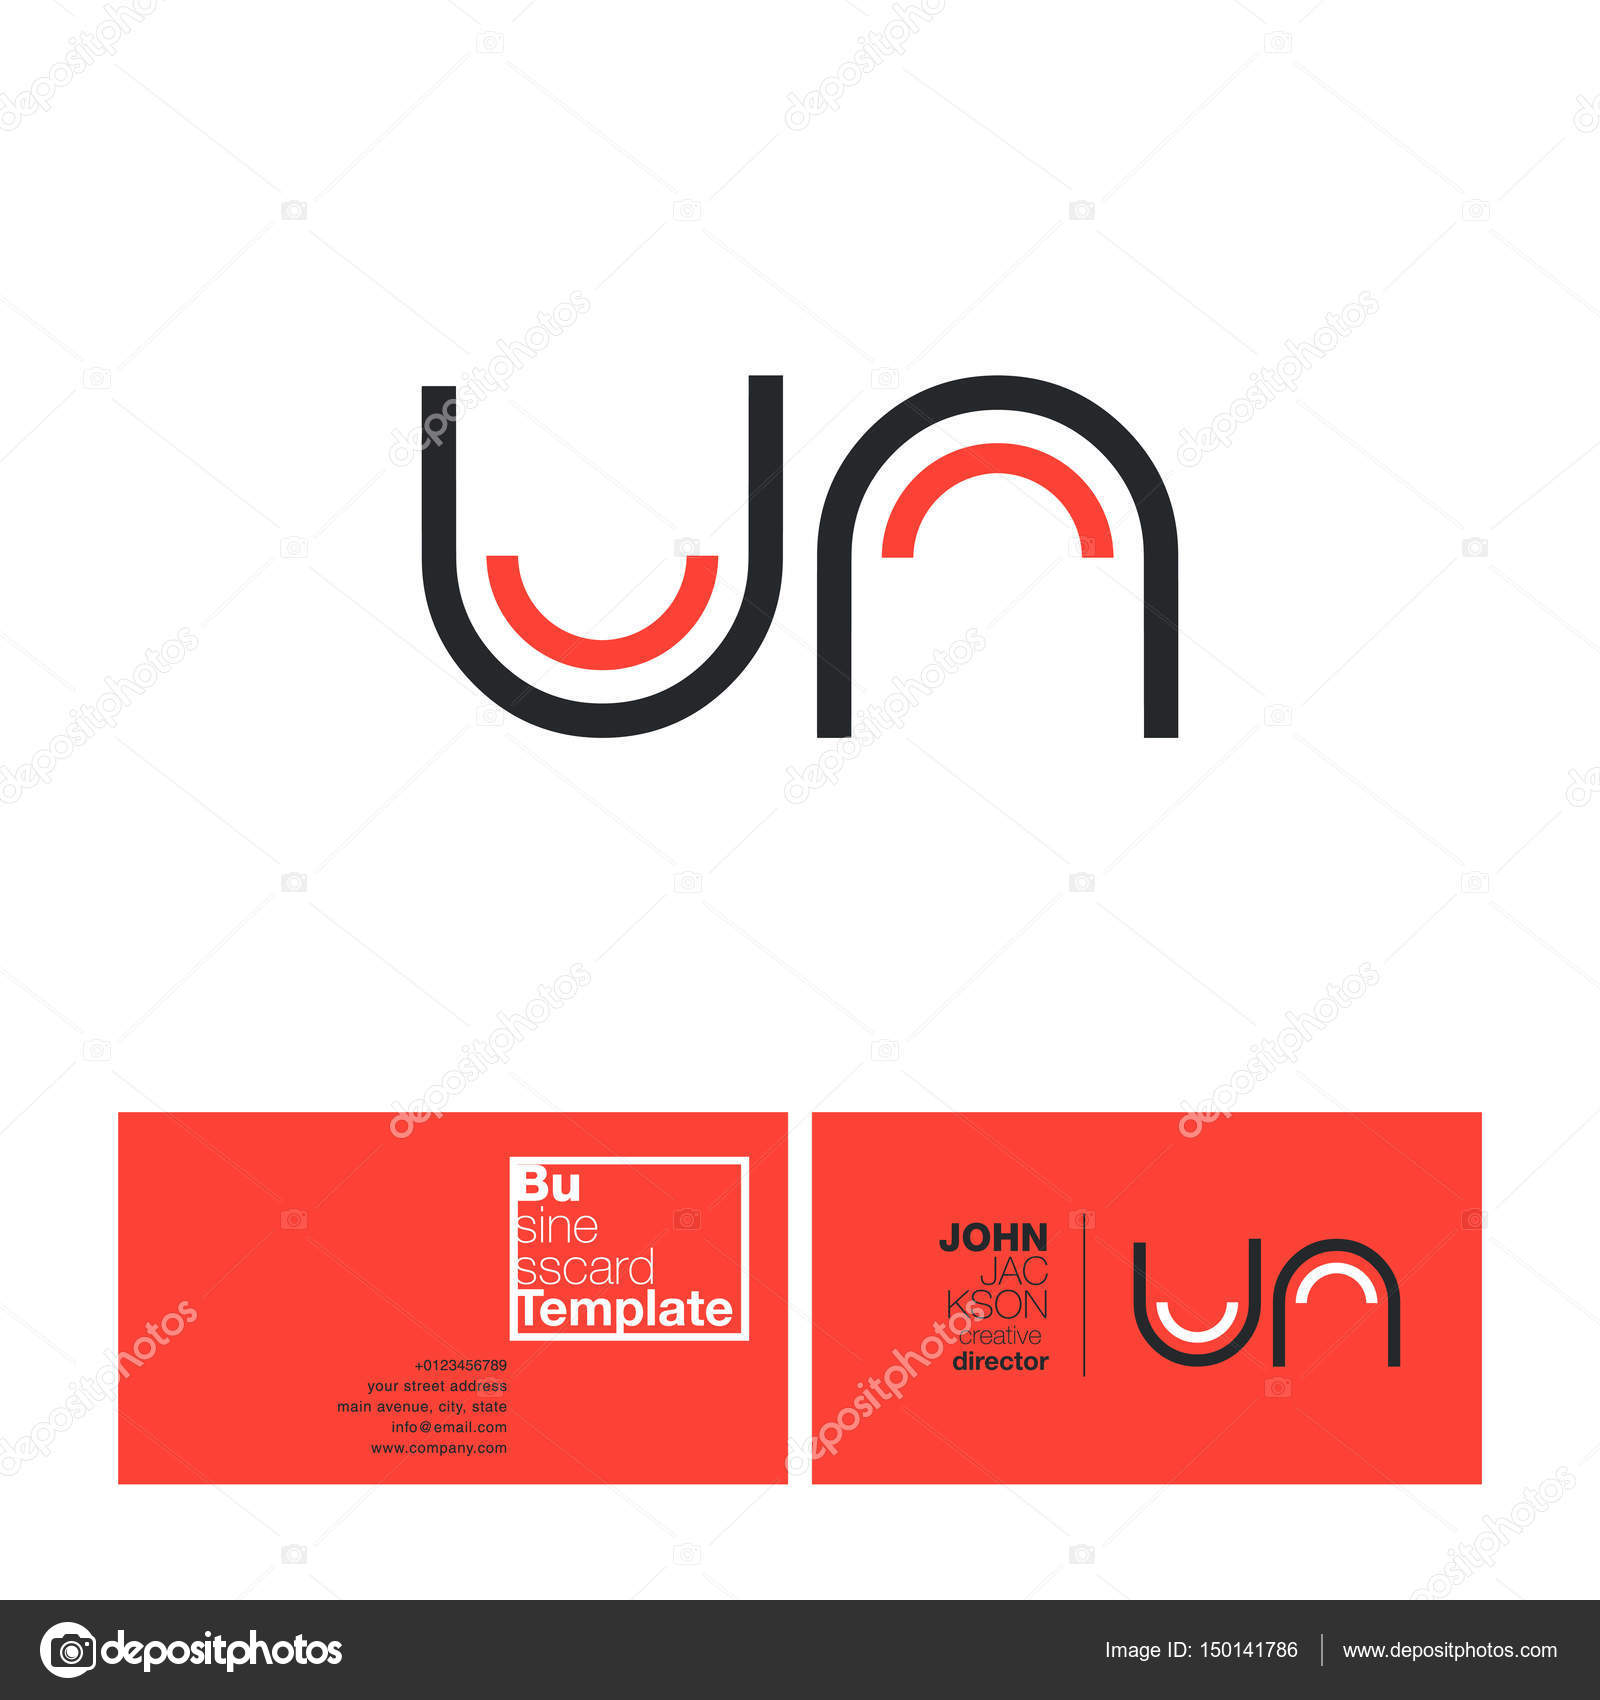 Un letters logo business card stock vector brainbistro 150141786 un round letters logo with business card template vector vector by brainbistro spiritdancerdesigns Image collections